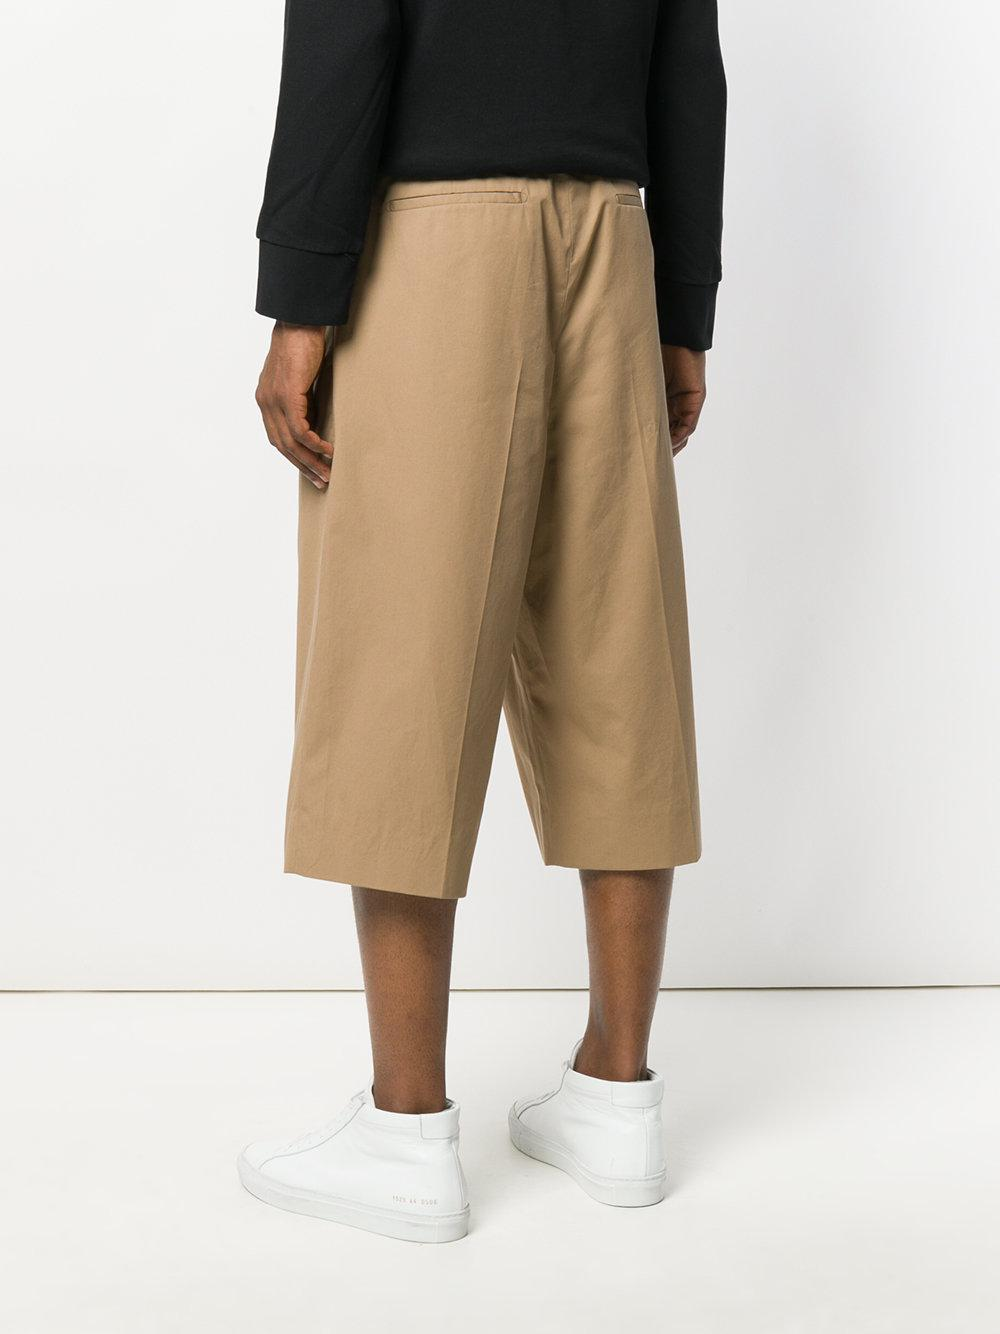 drawstring tailored shorts - Brown Maison Martin Margiela Shop For For Sale Official Site Online Popular Sale Online 2018 New For Sale How Much fPb7Bqh